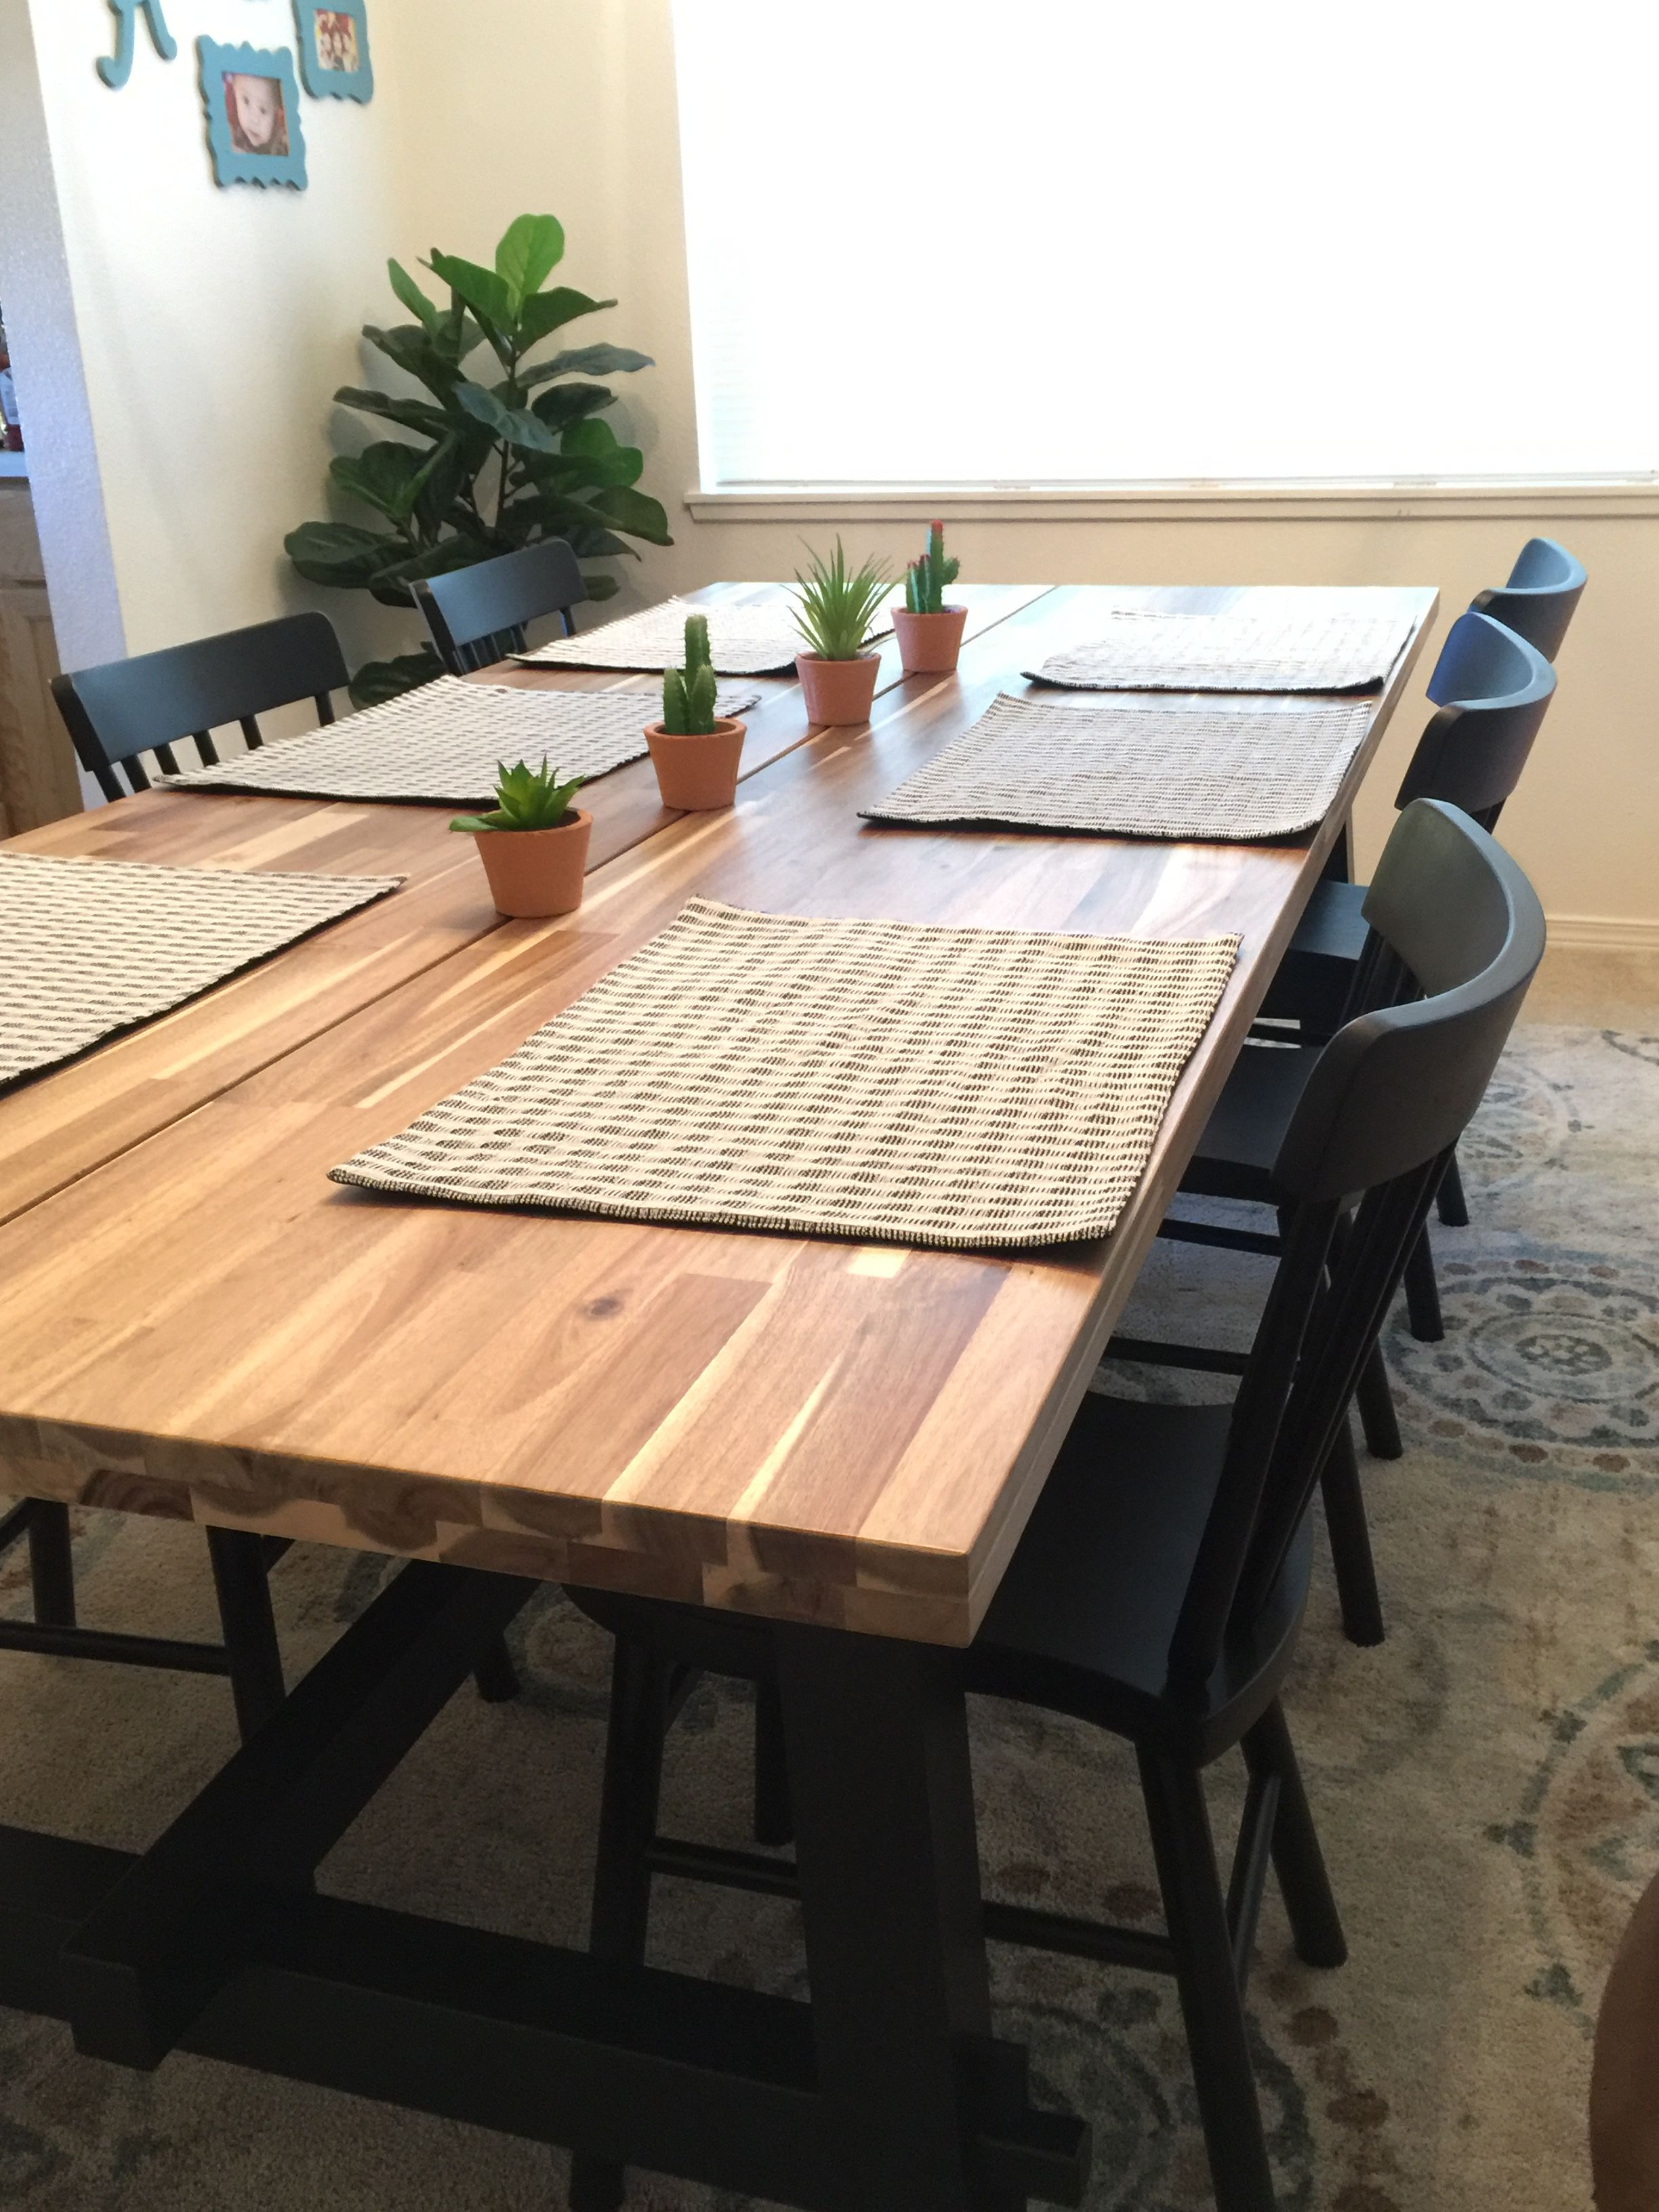 Ikea Skogsta Table Dining Dining Room Table Family Dining Table